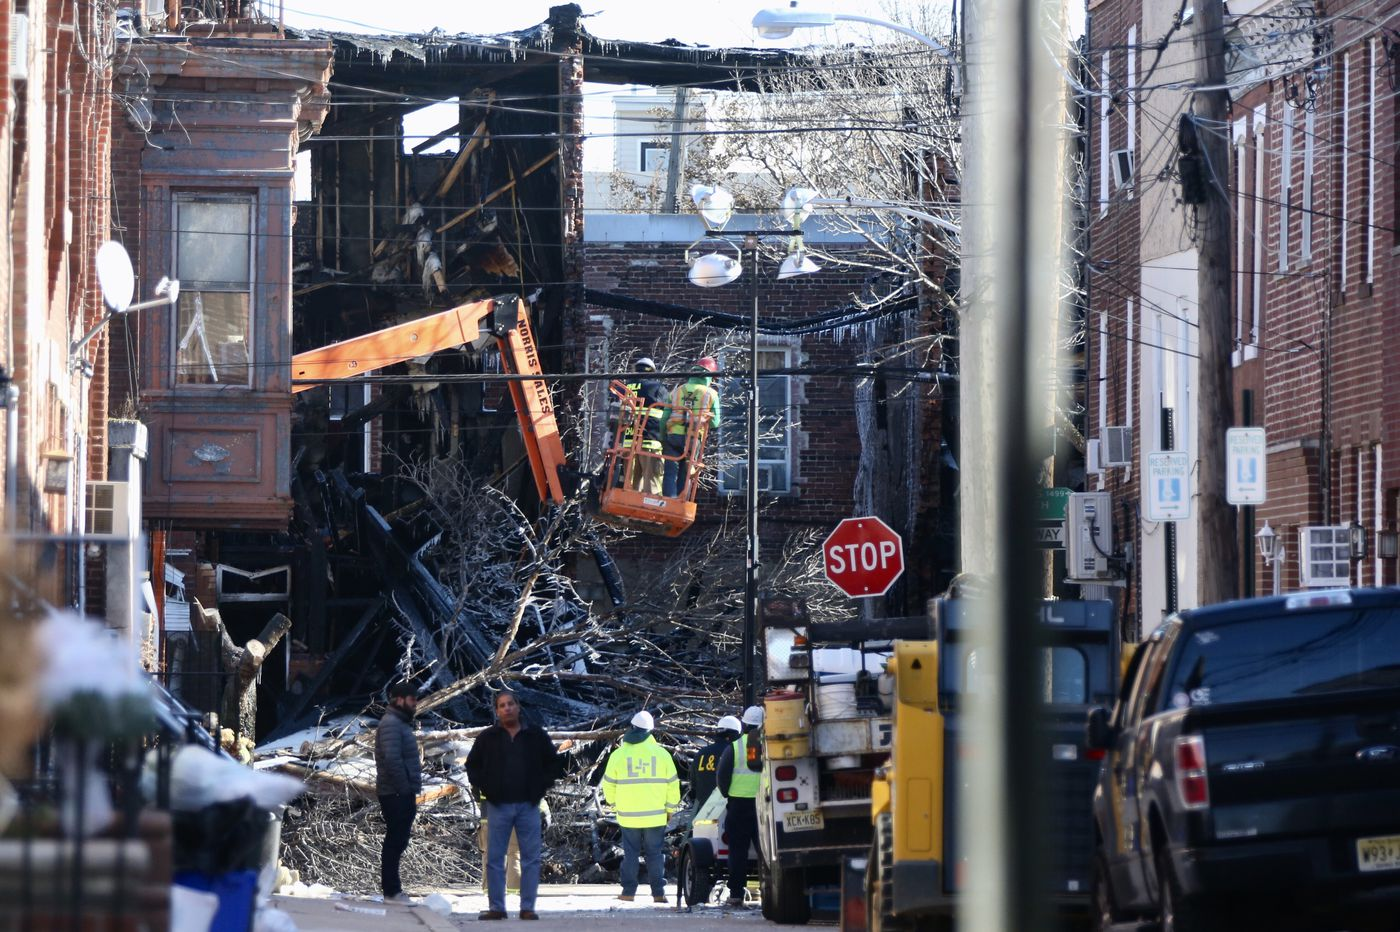 South Philly explosion caused by crack in gas main, officials say